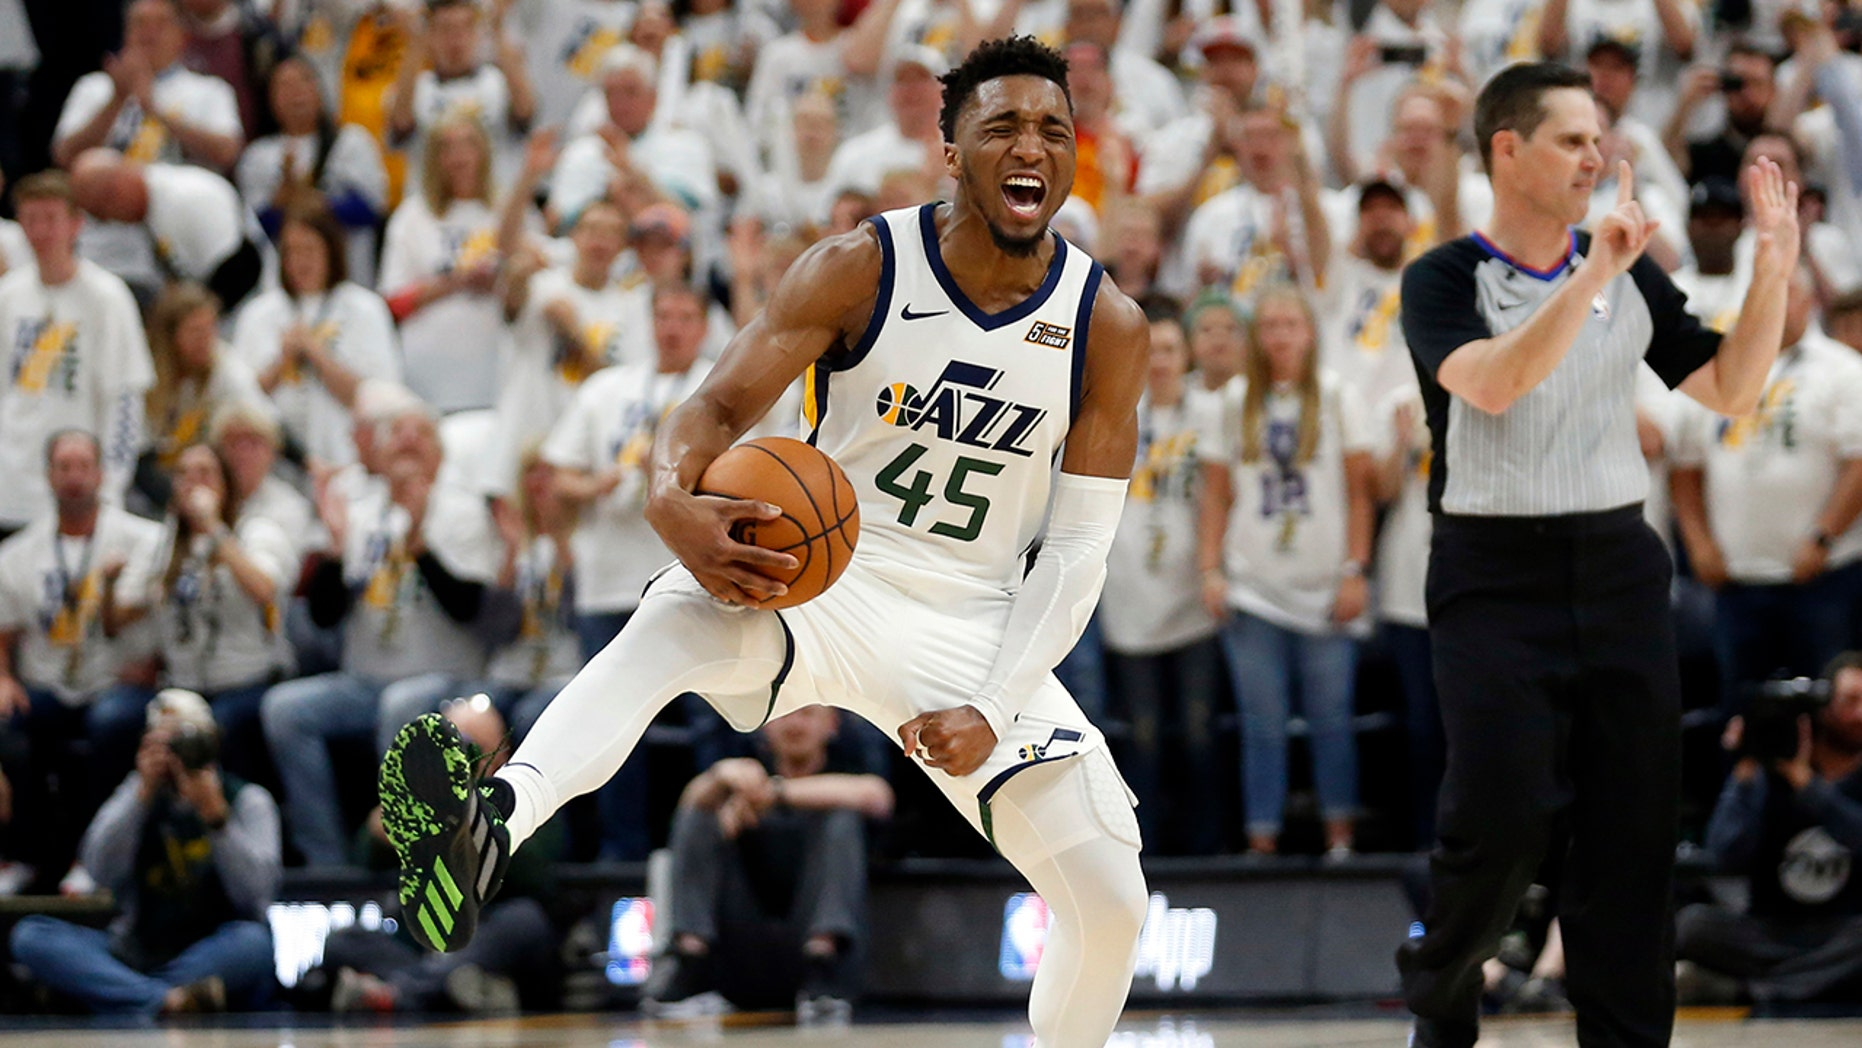 Westlake Legal Group NBA-Donovan-Mitchell Jazz stave off elimination with 107-91 win over Rockets fox-news/sports/nba/utah-jazz fox-news/sports/nba/houston-rockets fox-news/sports/nba-playoffs fox-news/sports/nba fnc/sports fnc Associated Press article 7e5179d2-7545-50fd-998d-a60aca483bb4